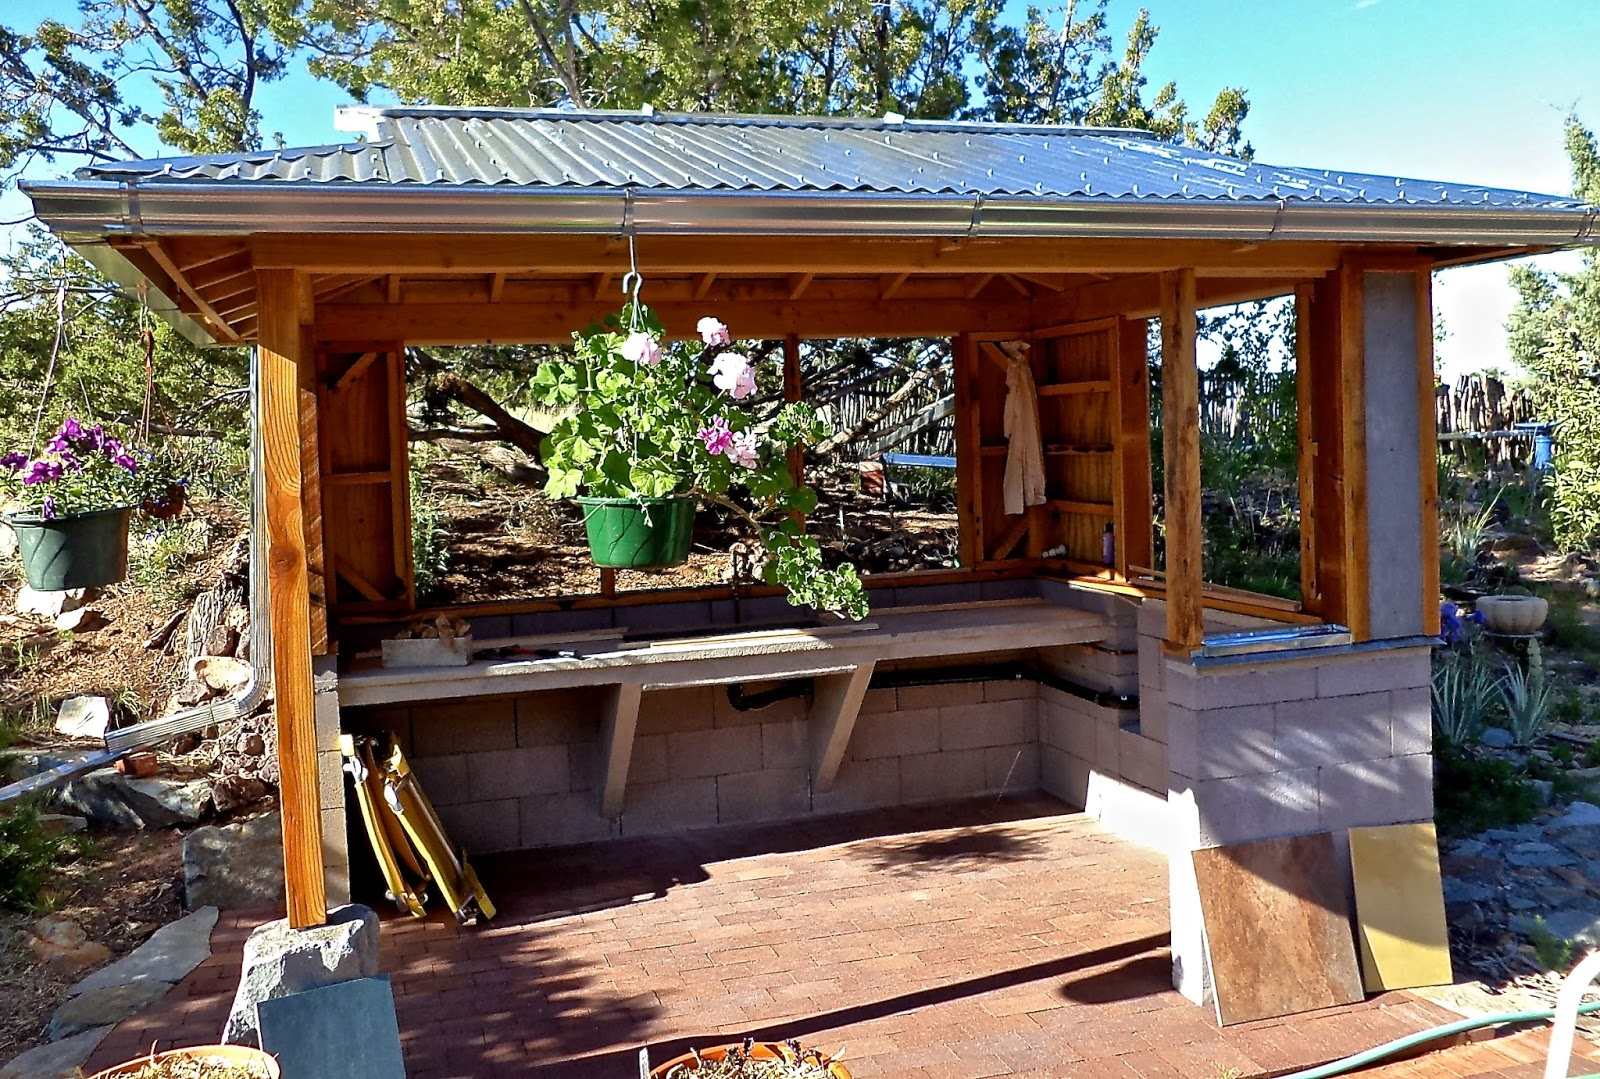 Alt. Build Blog: Building An Outdoor Kitchen: #2 Framing ... on Backyard Bar With Roof id=47996